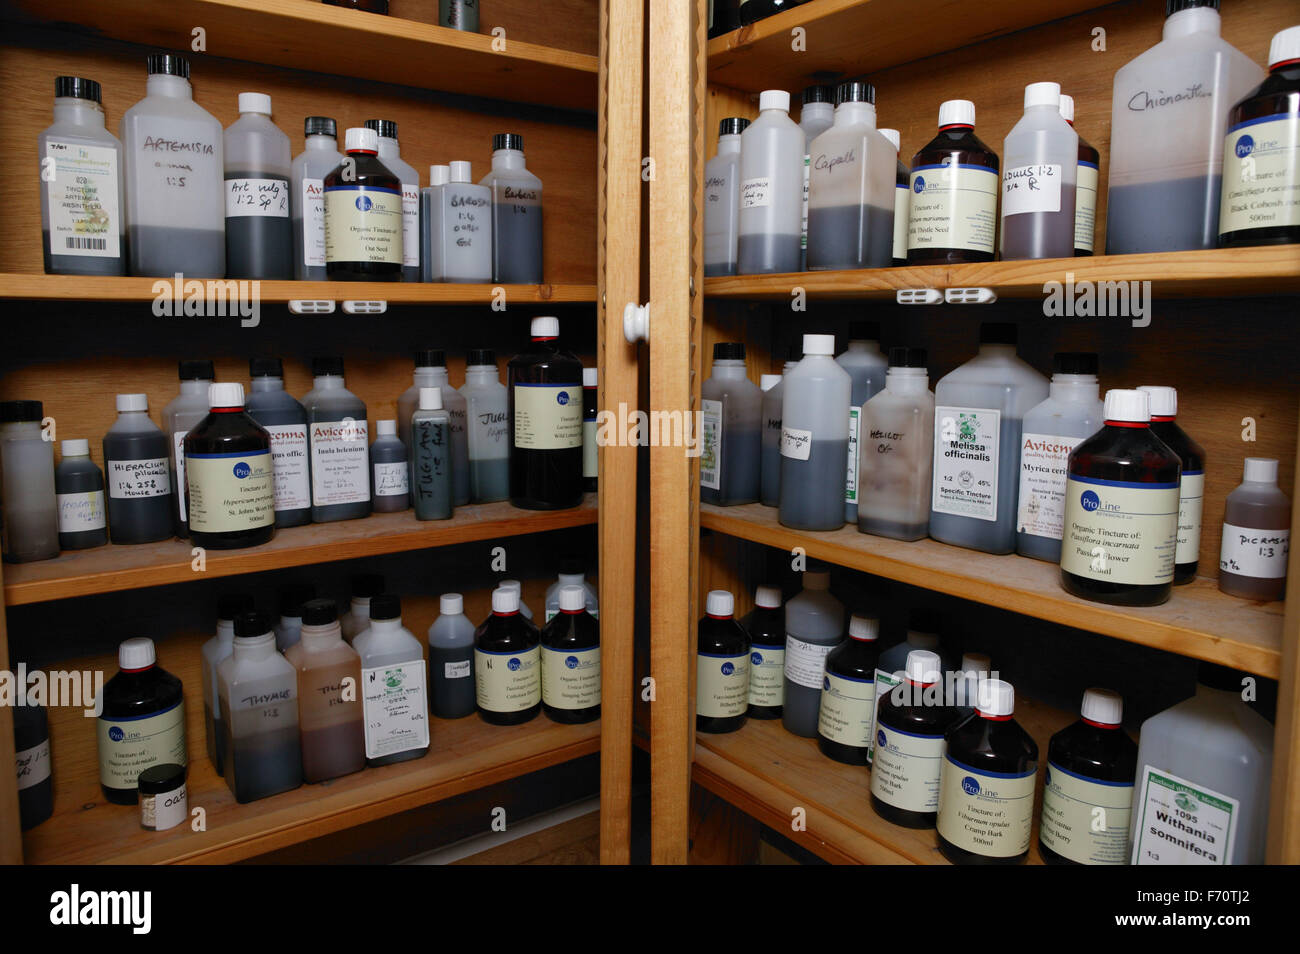 Alternative medicine store, UK - Stock Image